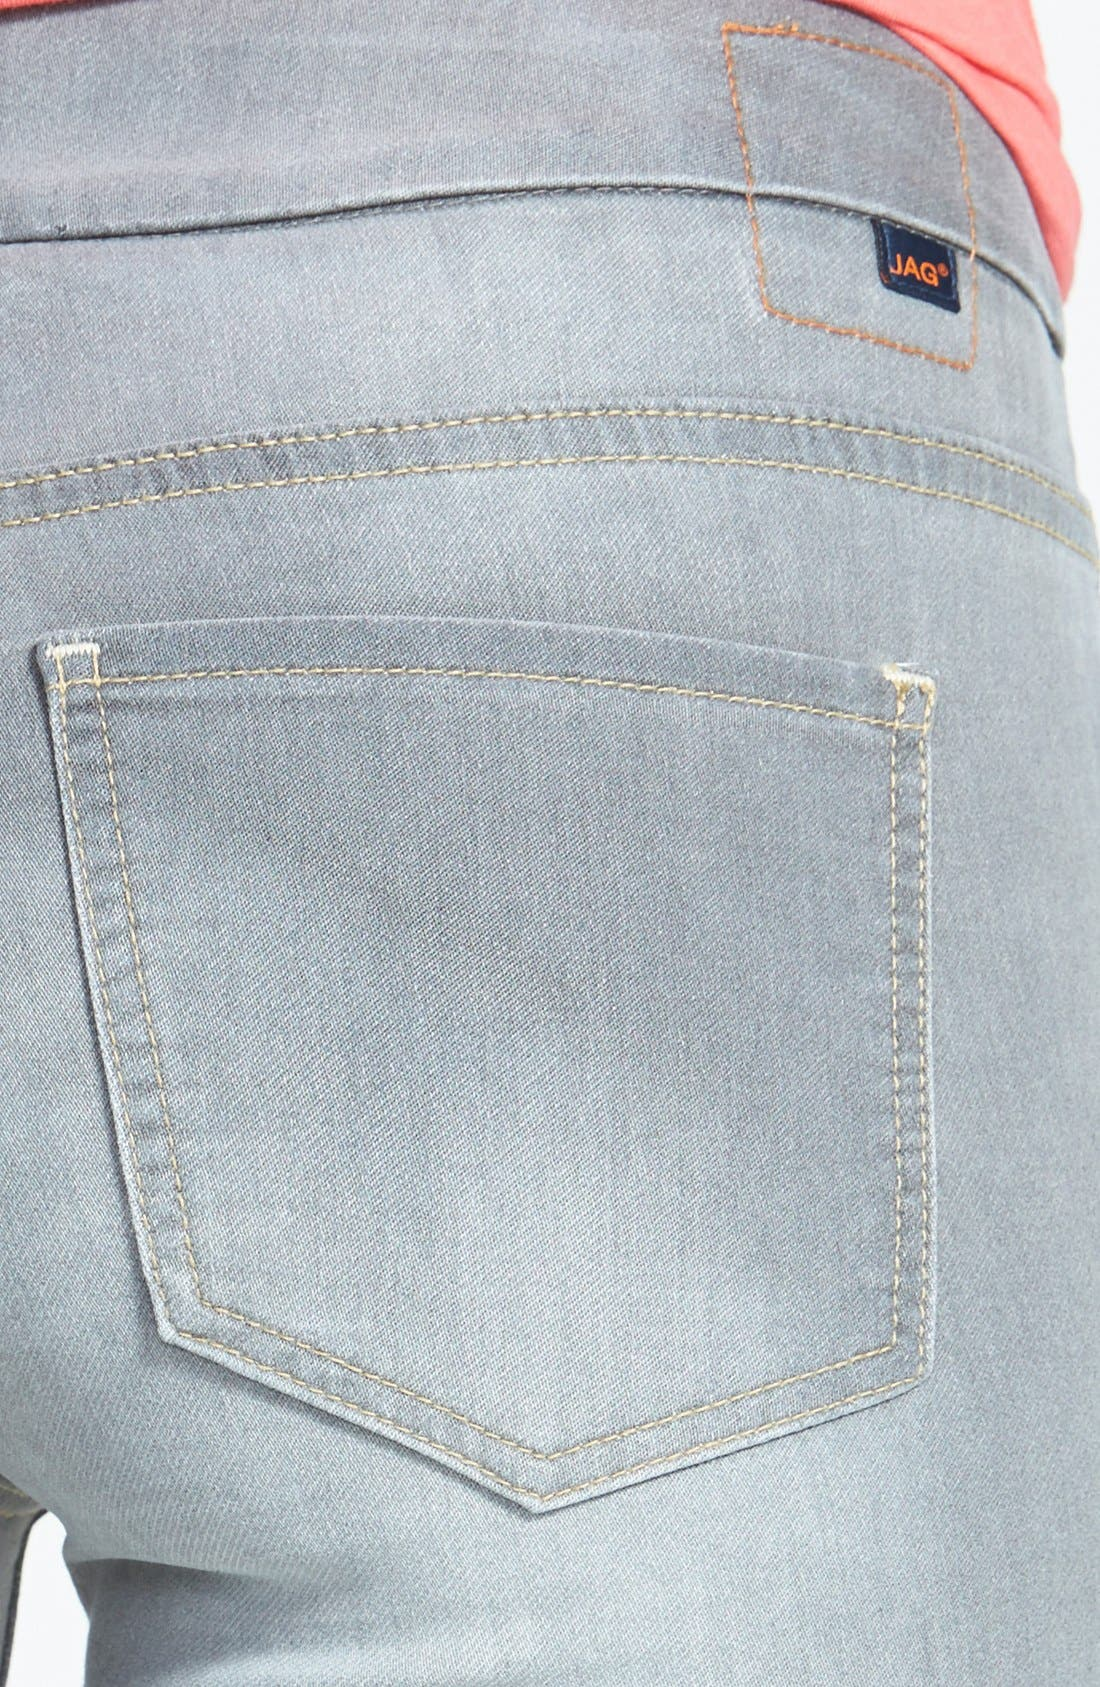 Alternate Image 3  - Jag Jeans 'Nora' Pull-On Stretch Knit Skinny Jeans (Antique Tint)